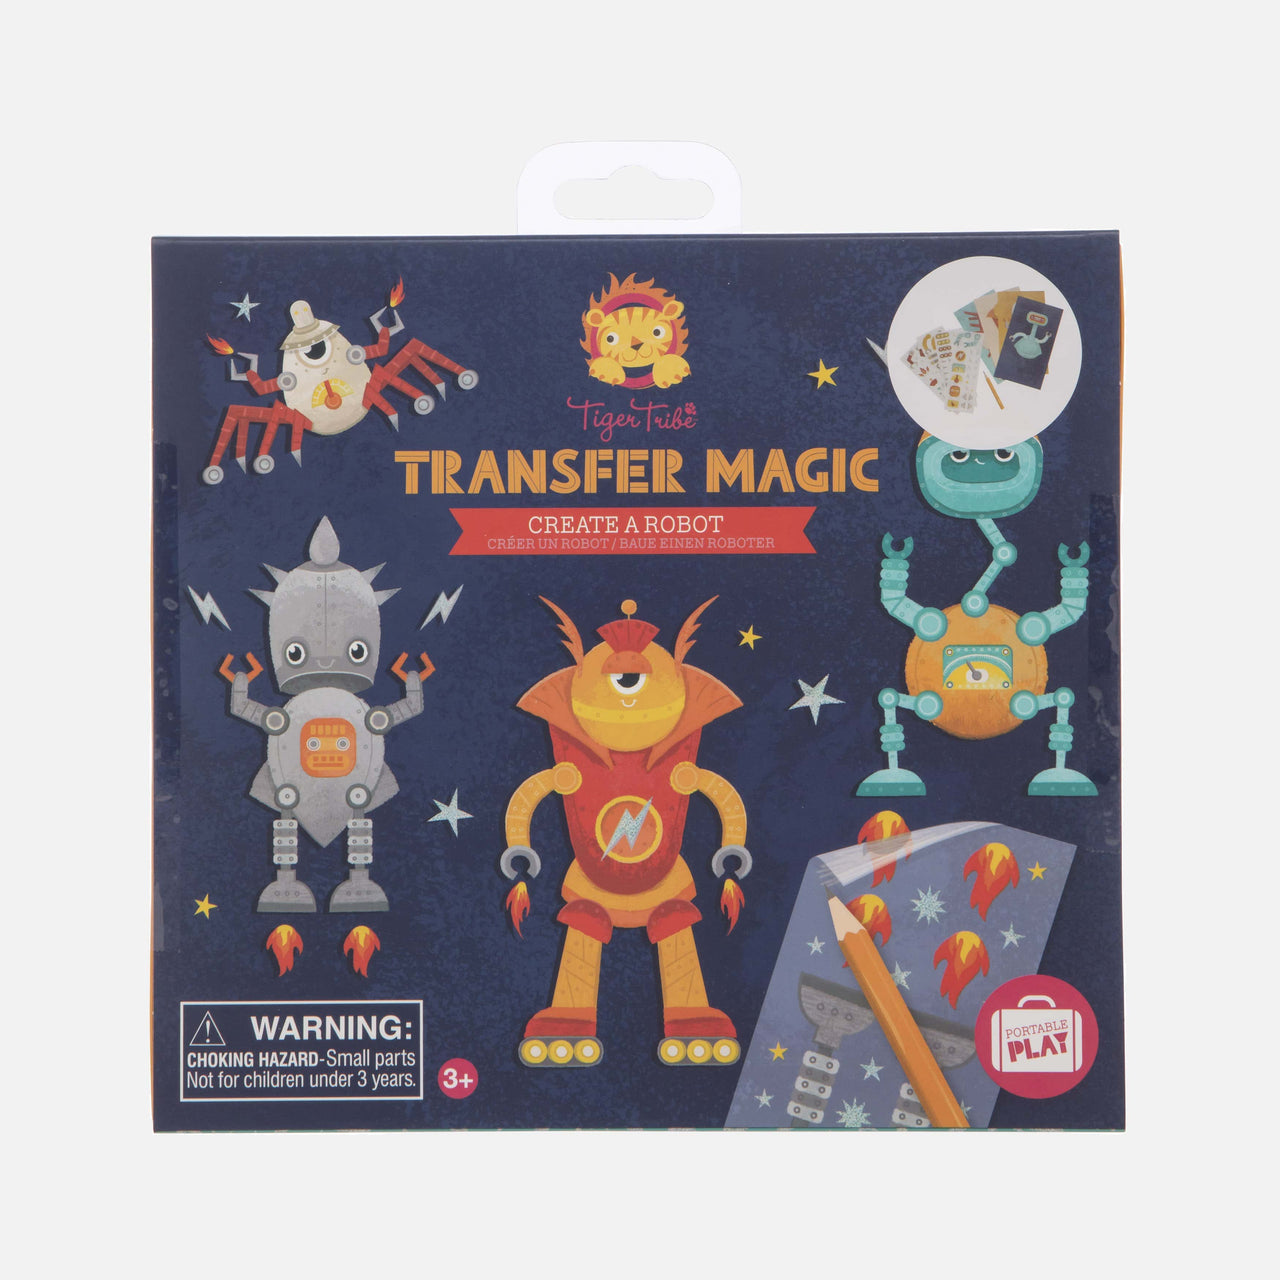 Transfer Magic - Create a Robot